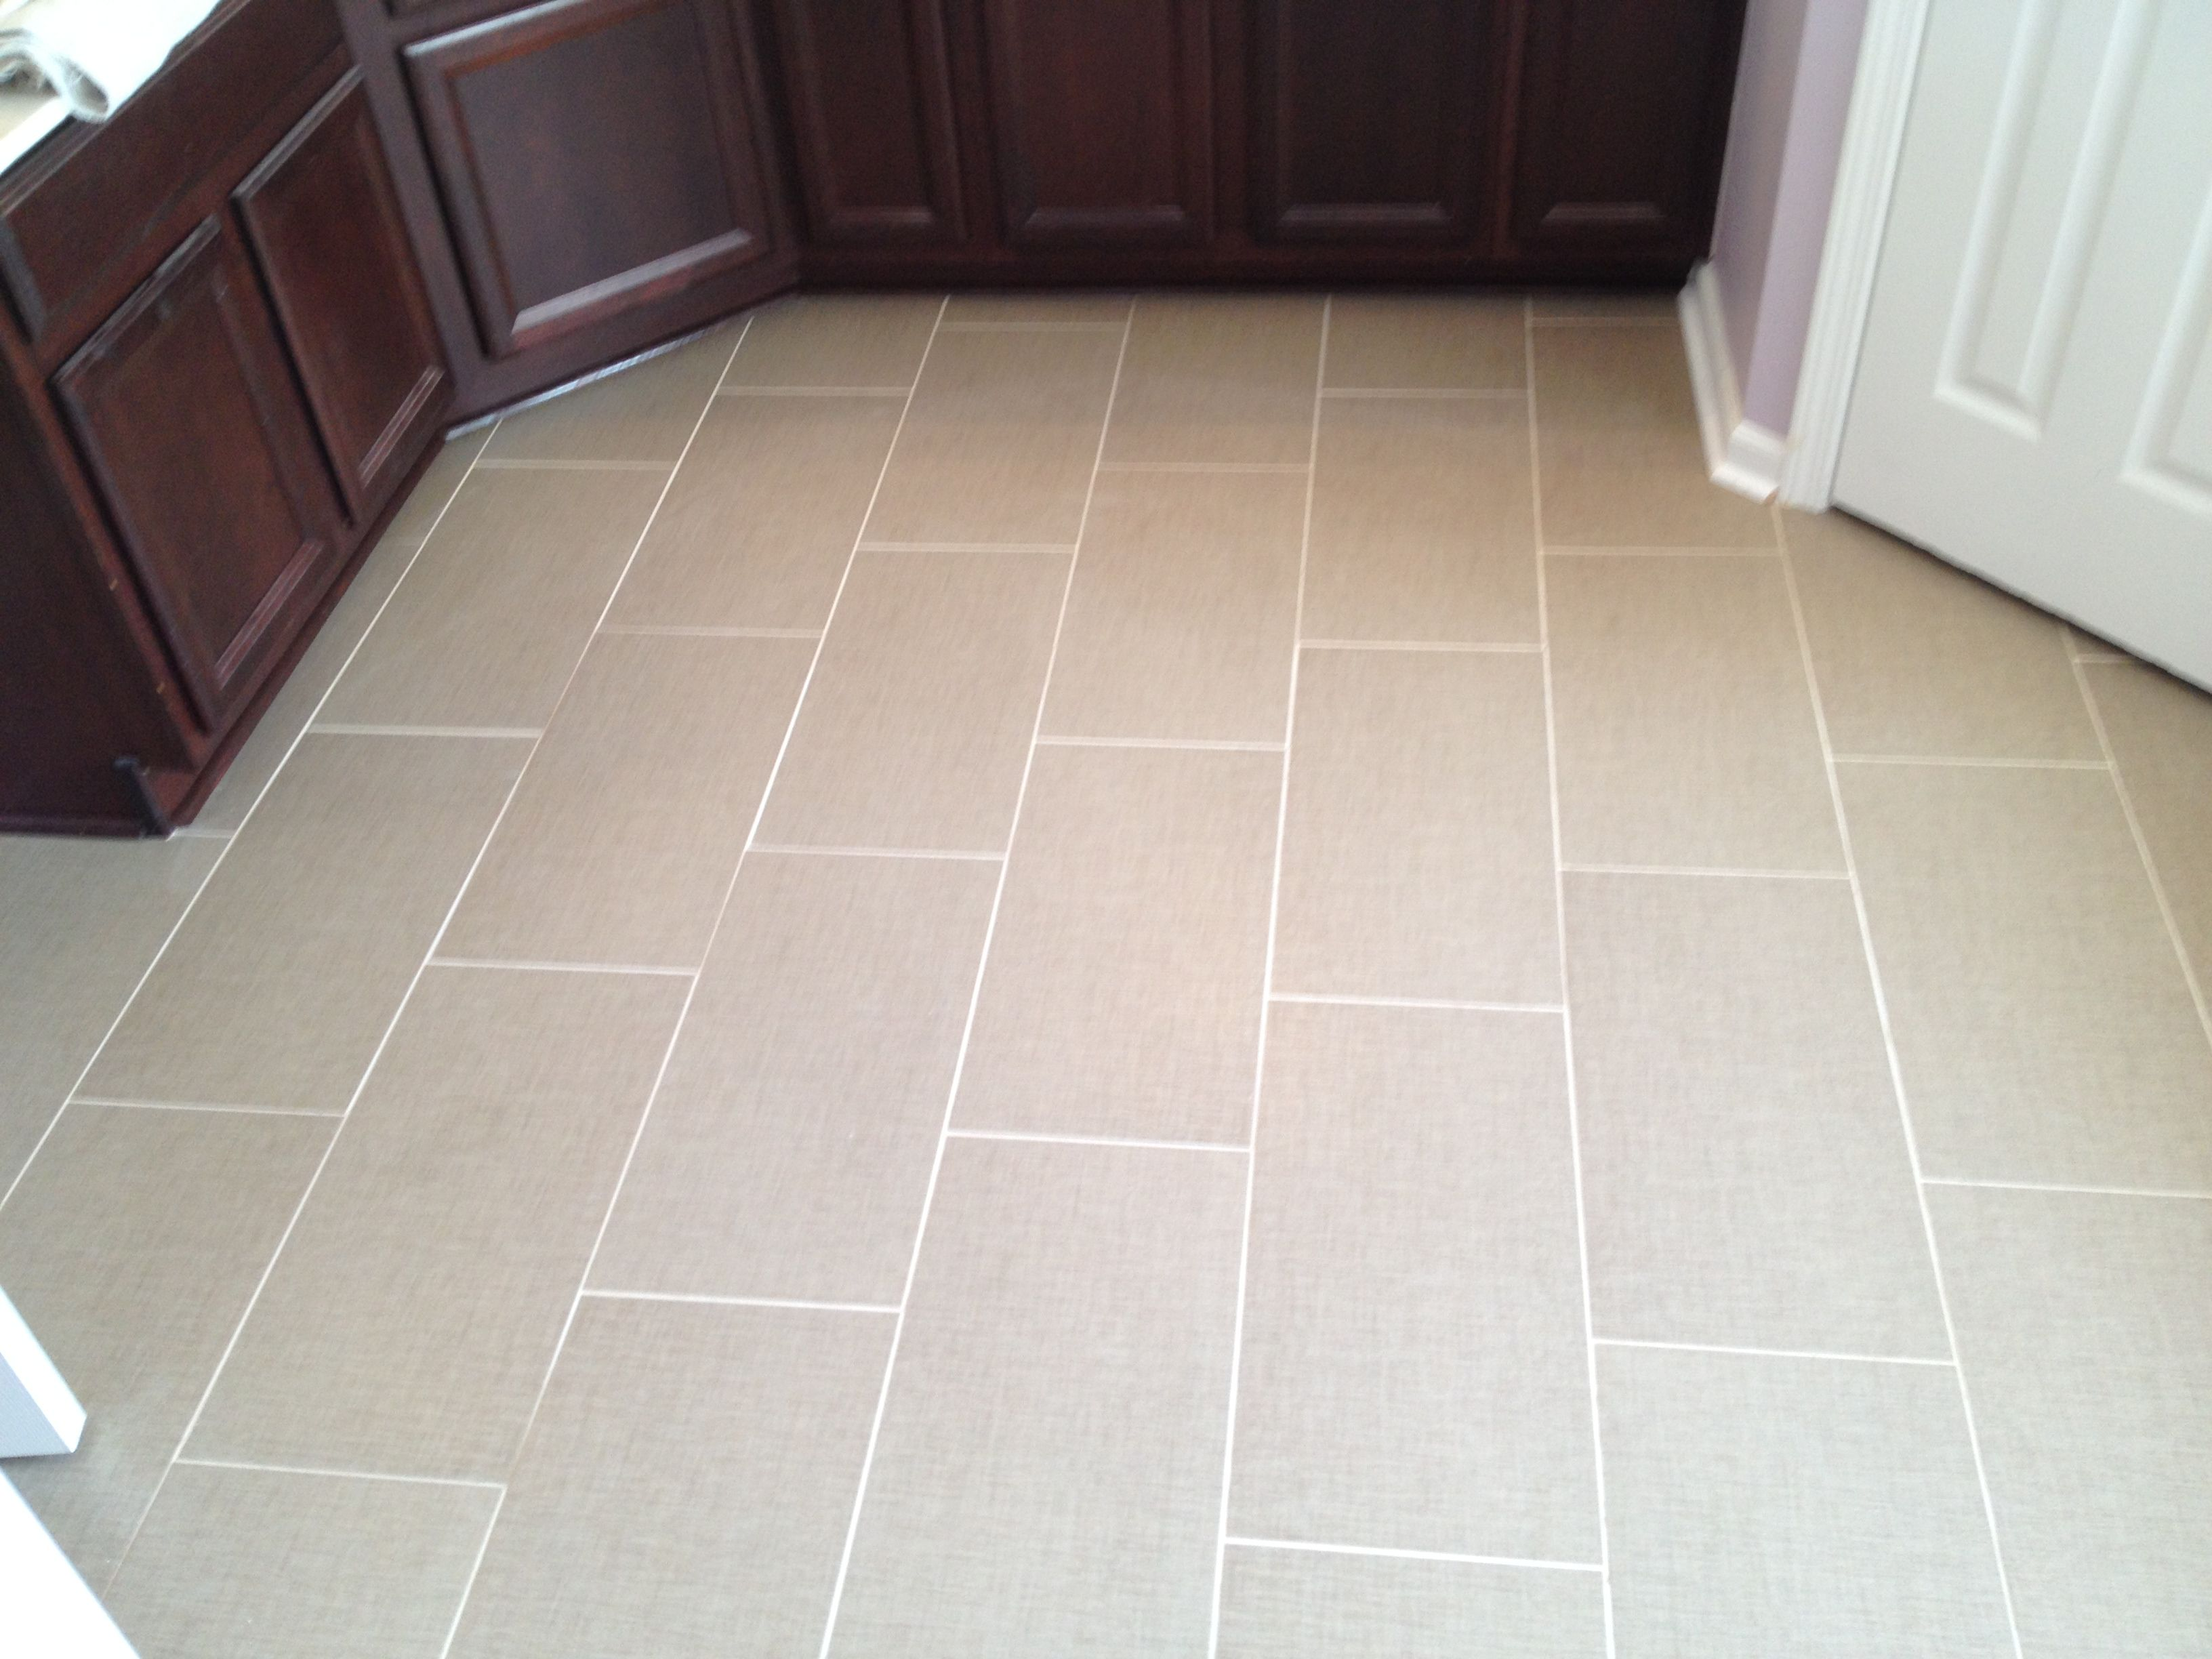 Master Bath 12 X 24 1 3rd Offset With 1 8th Grout Joints Using Laticrete S 254 Platinum Thin Set And Perma C Grout Color Wood Laminate Flooring Wood Laminate